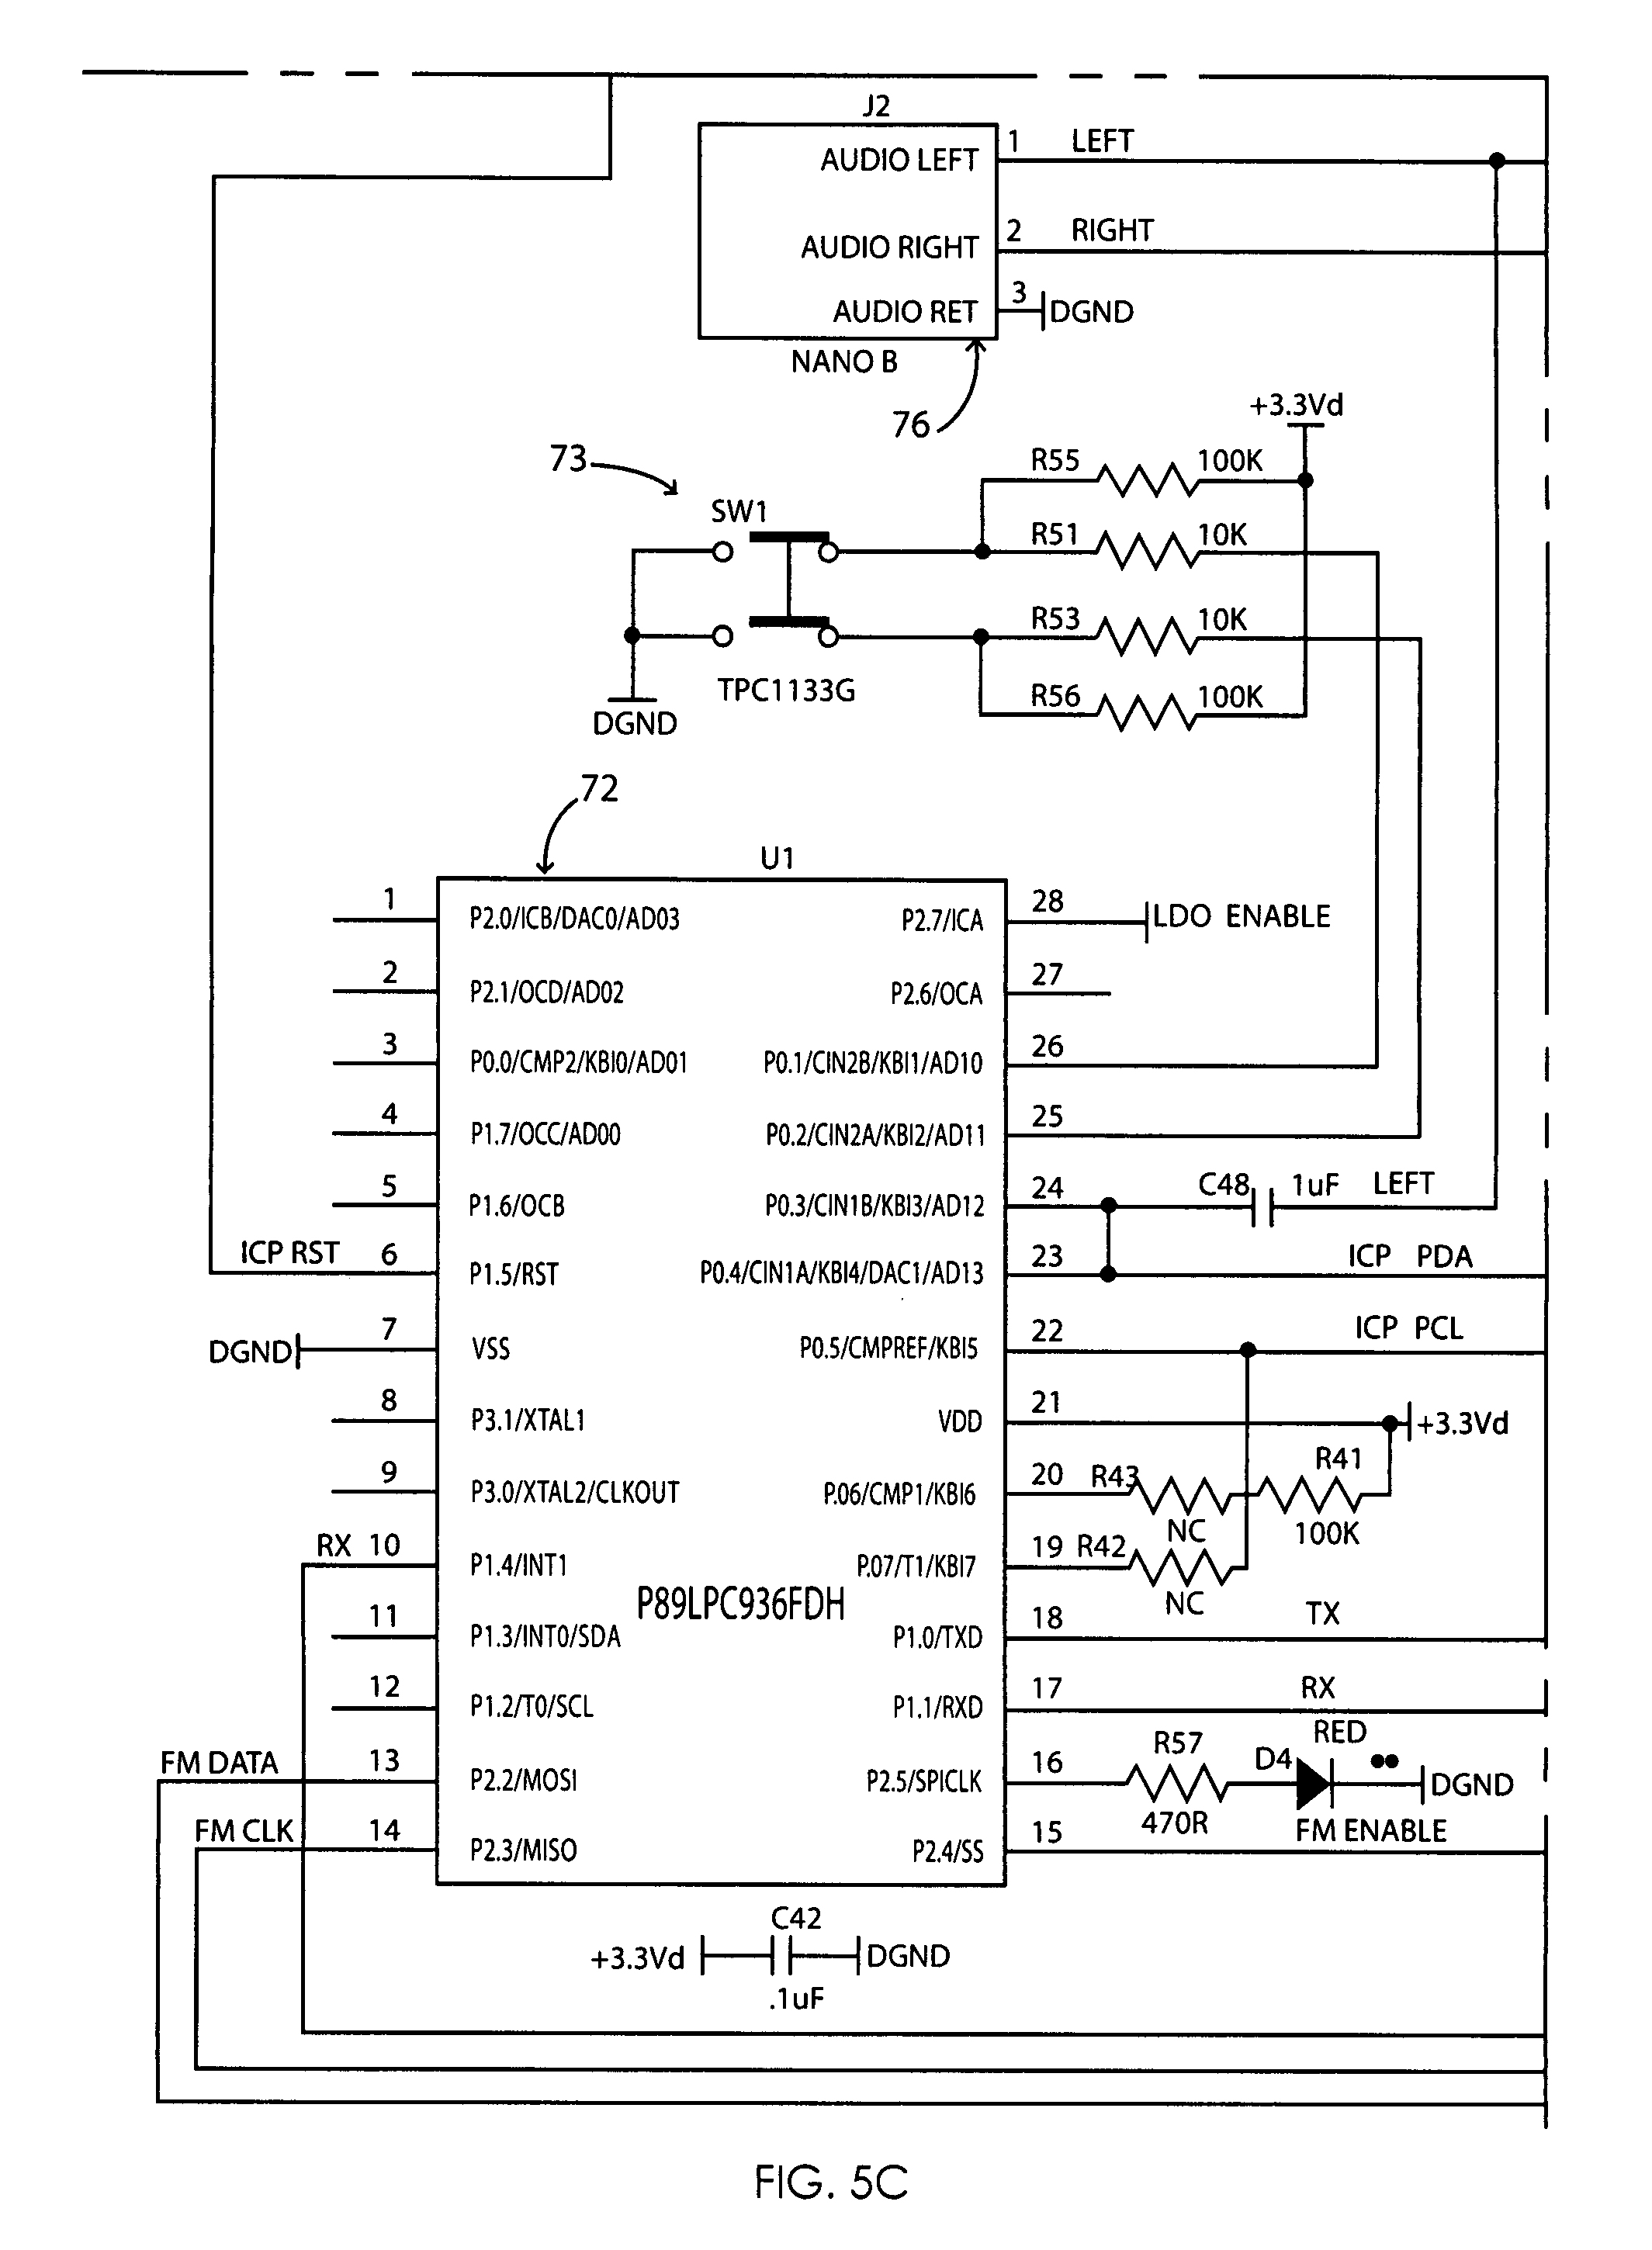 Ipod Itrip Wiring Diagram Schematics And Diagrams Griffin Peterson - Usb Wiring Diagram Positive